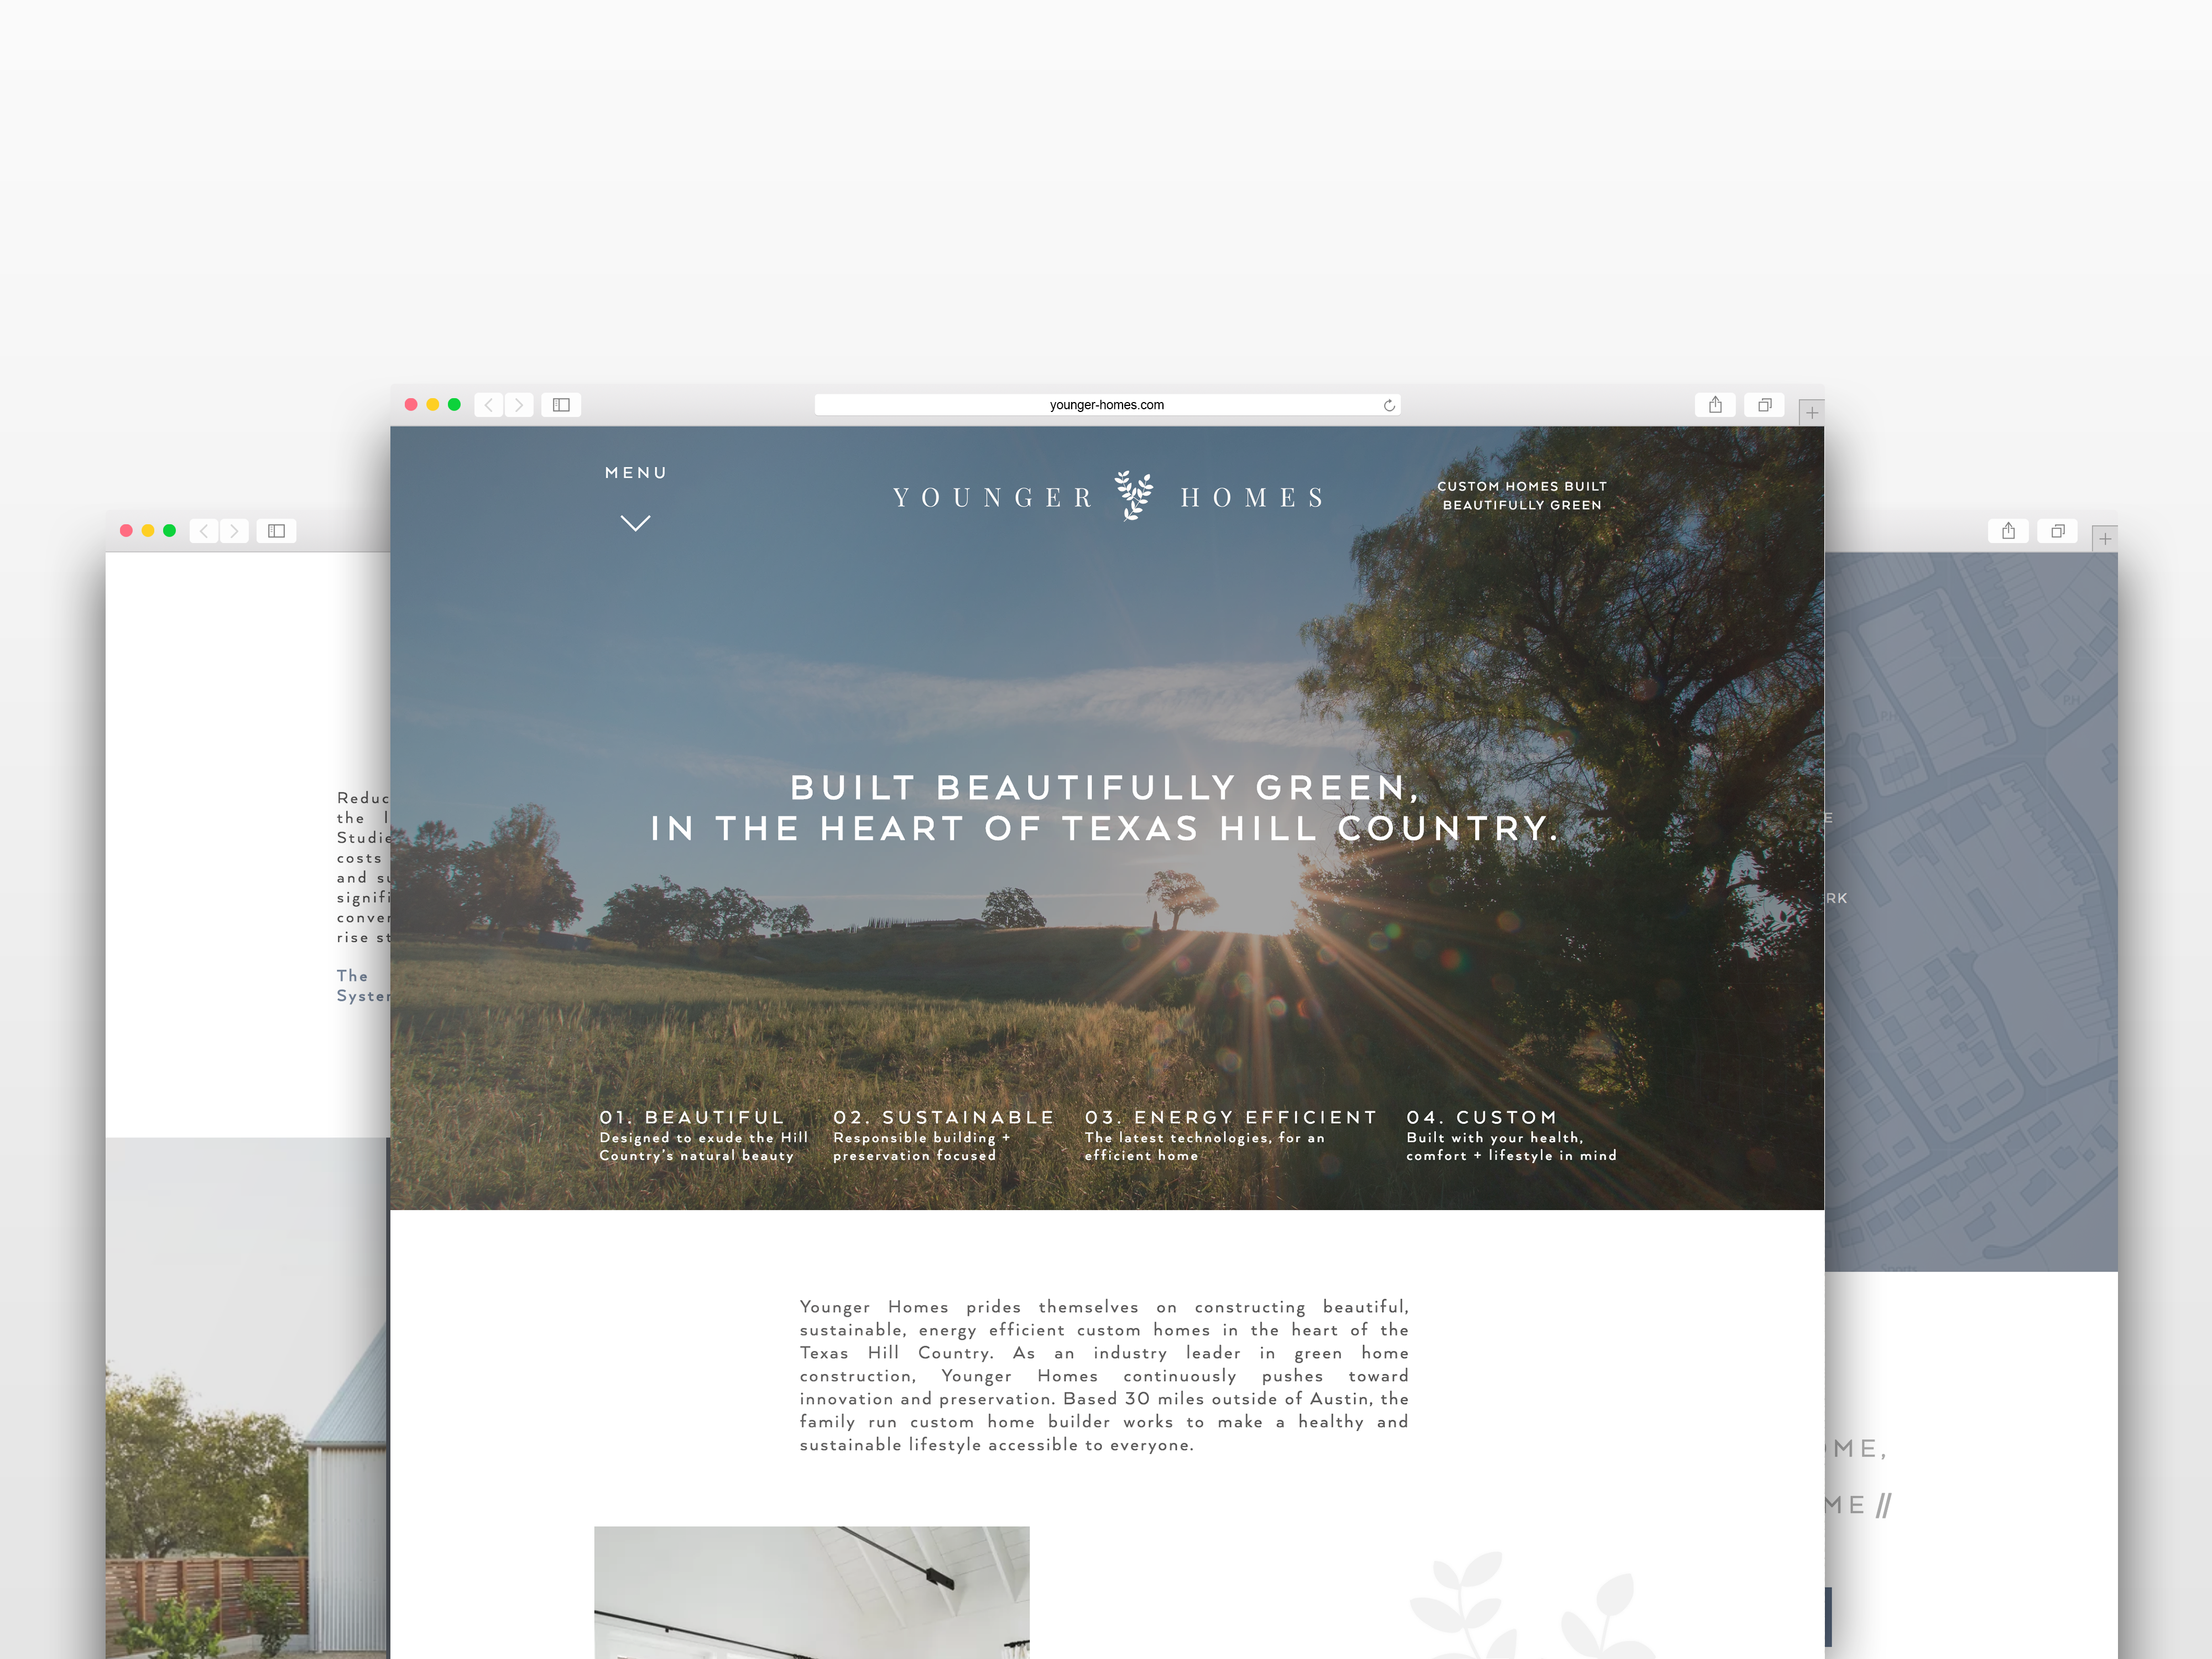 The Identite Collective Branding Web Design And Content Creation For Interior Designers And Lifestyle Brands Natu Web Design Wix Web Design Branding Design